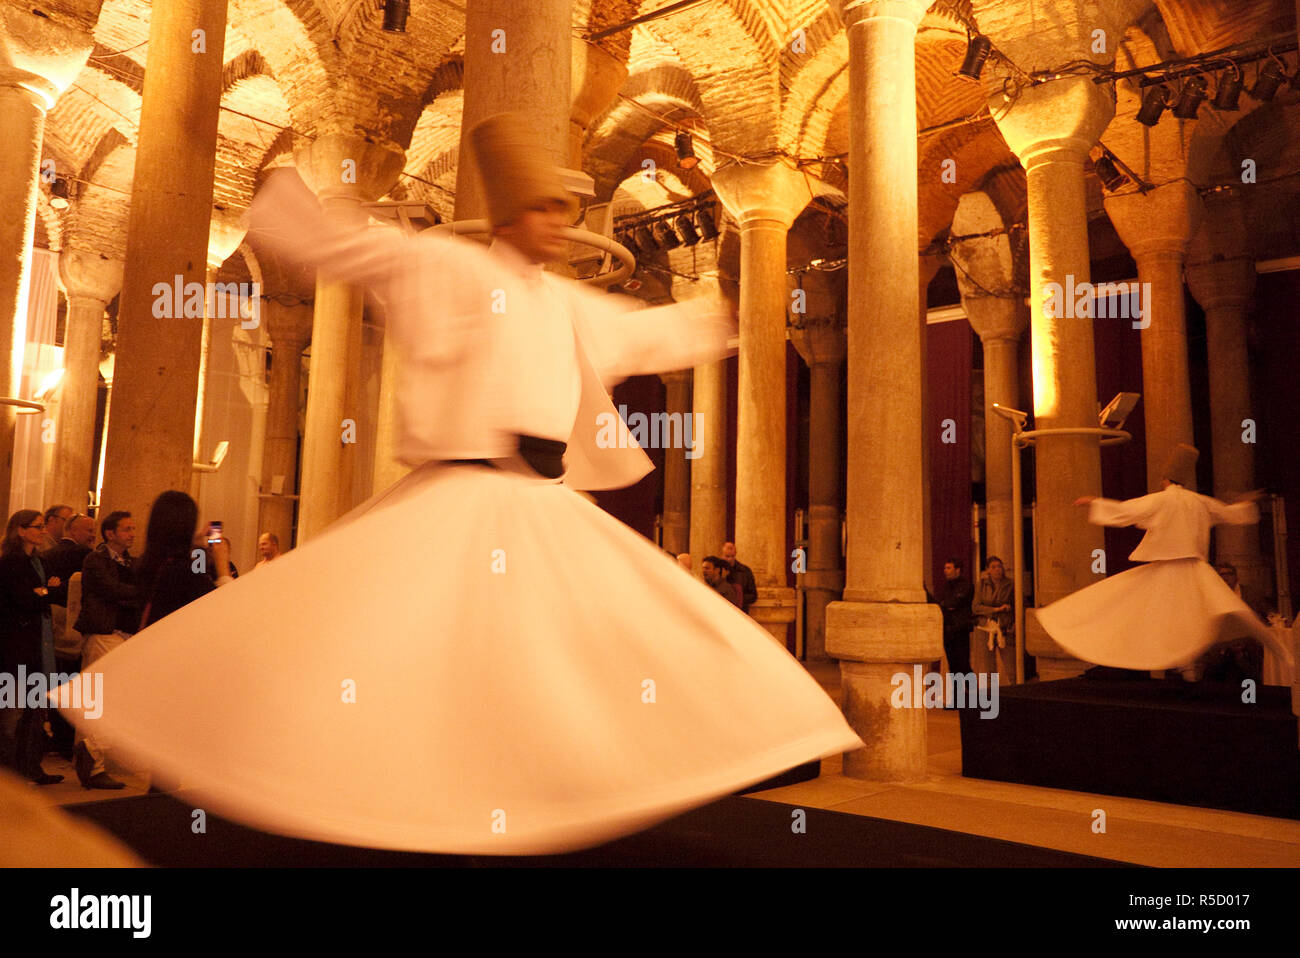 Whirling dervishes in the 1001 column cisterns, Istanbul, Turkey - Stock Image